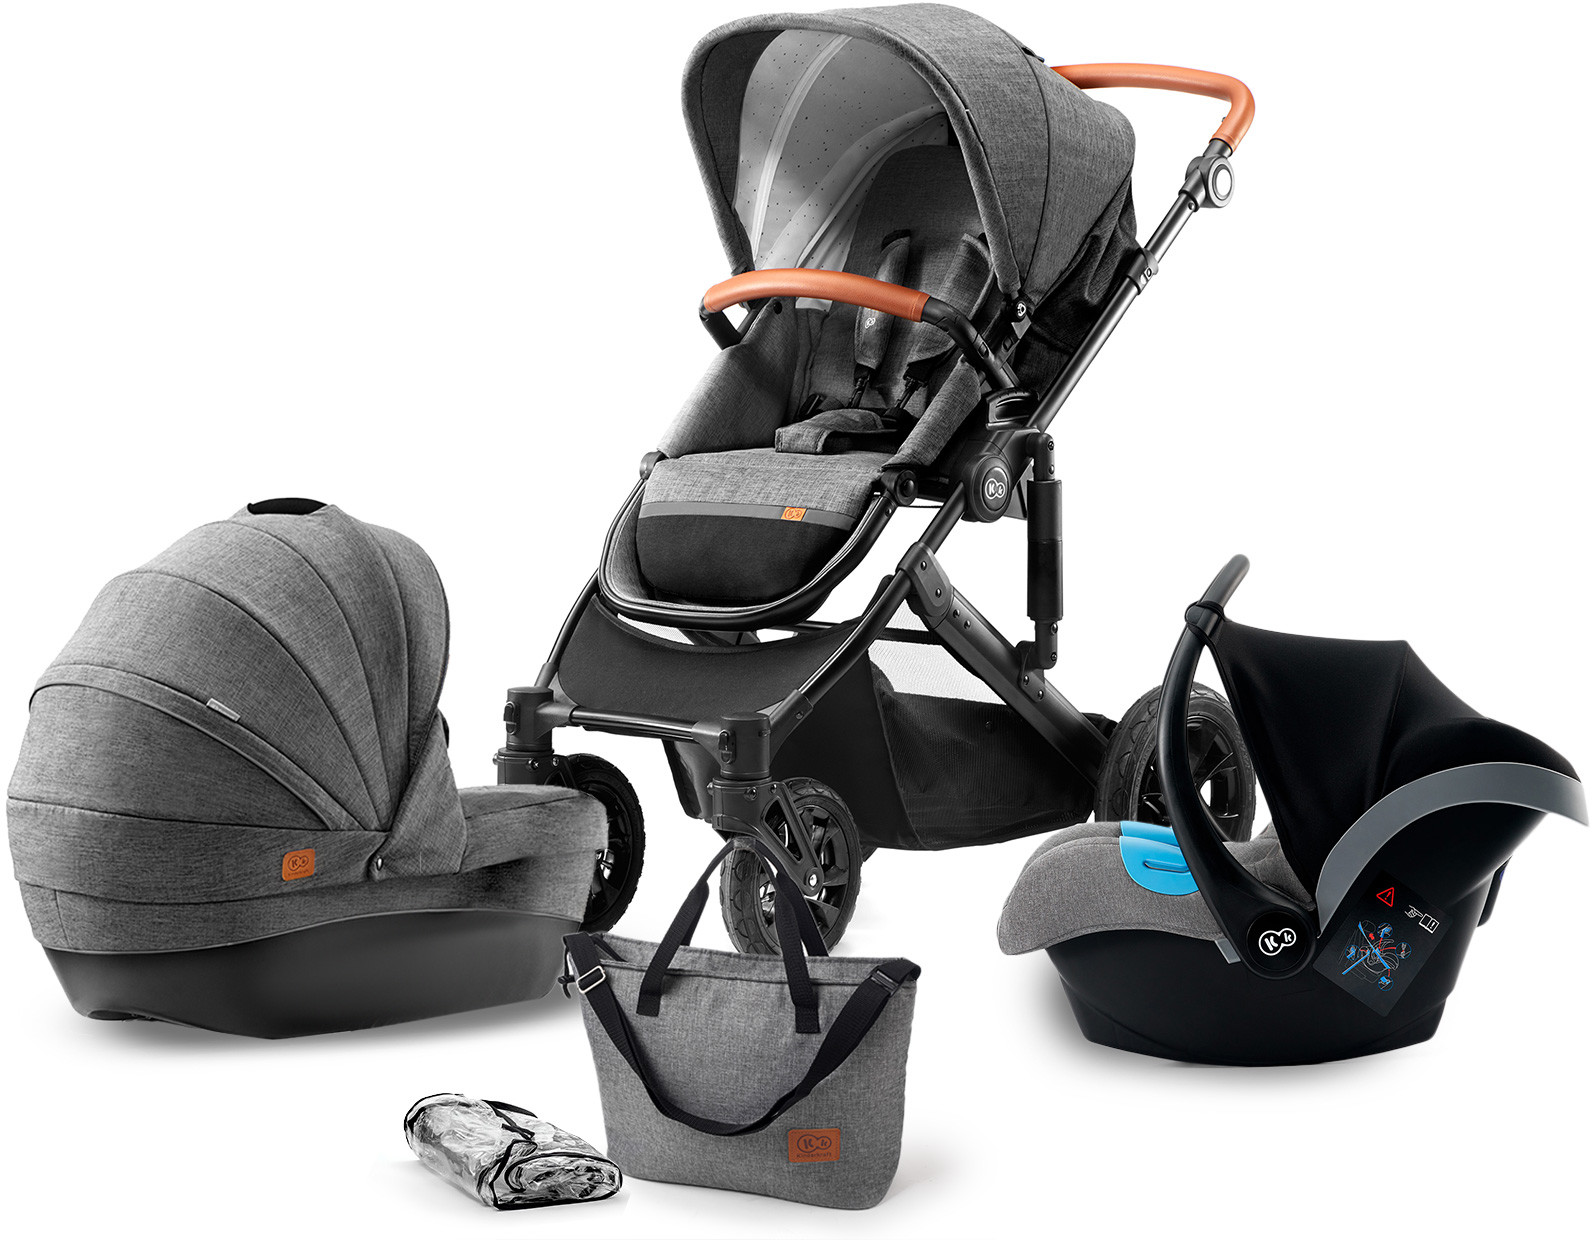 KinderKraft PRIME 3w1 Grey